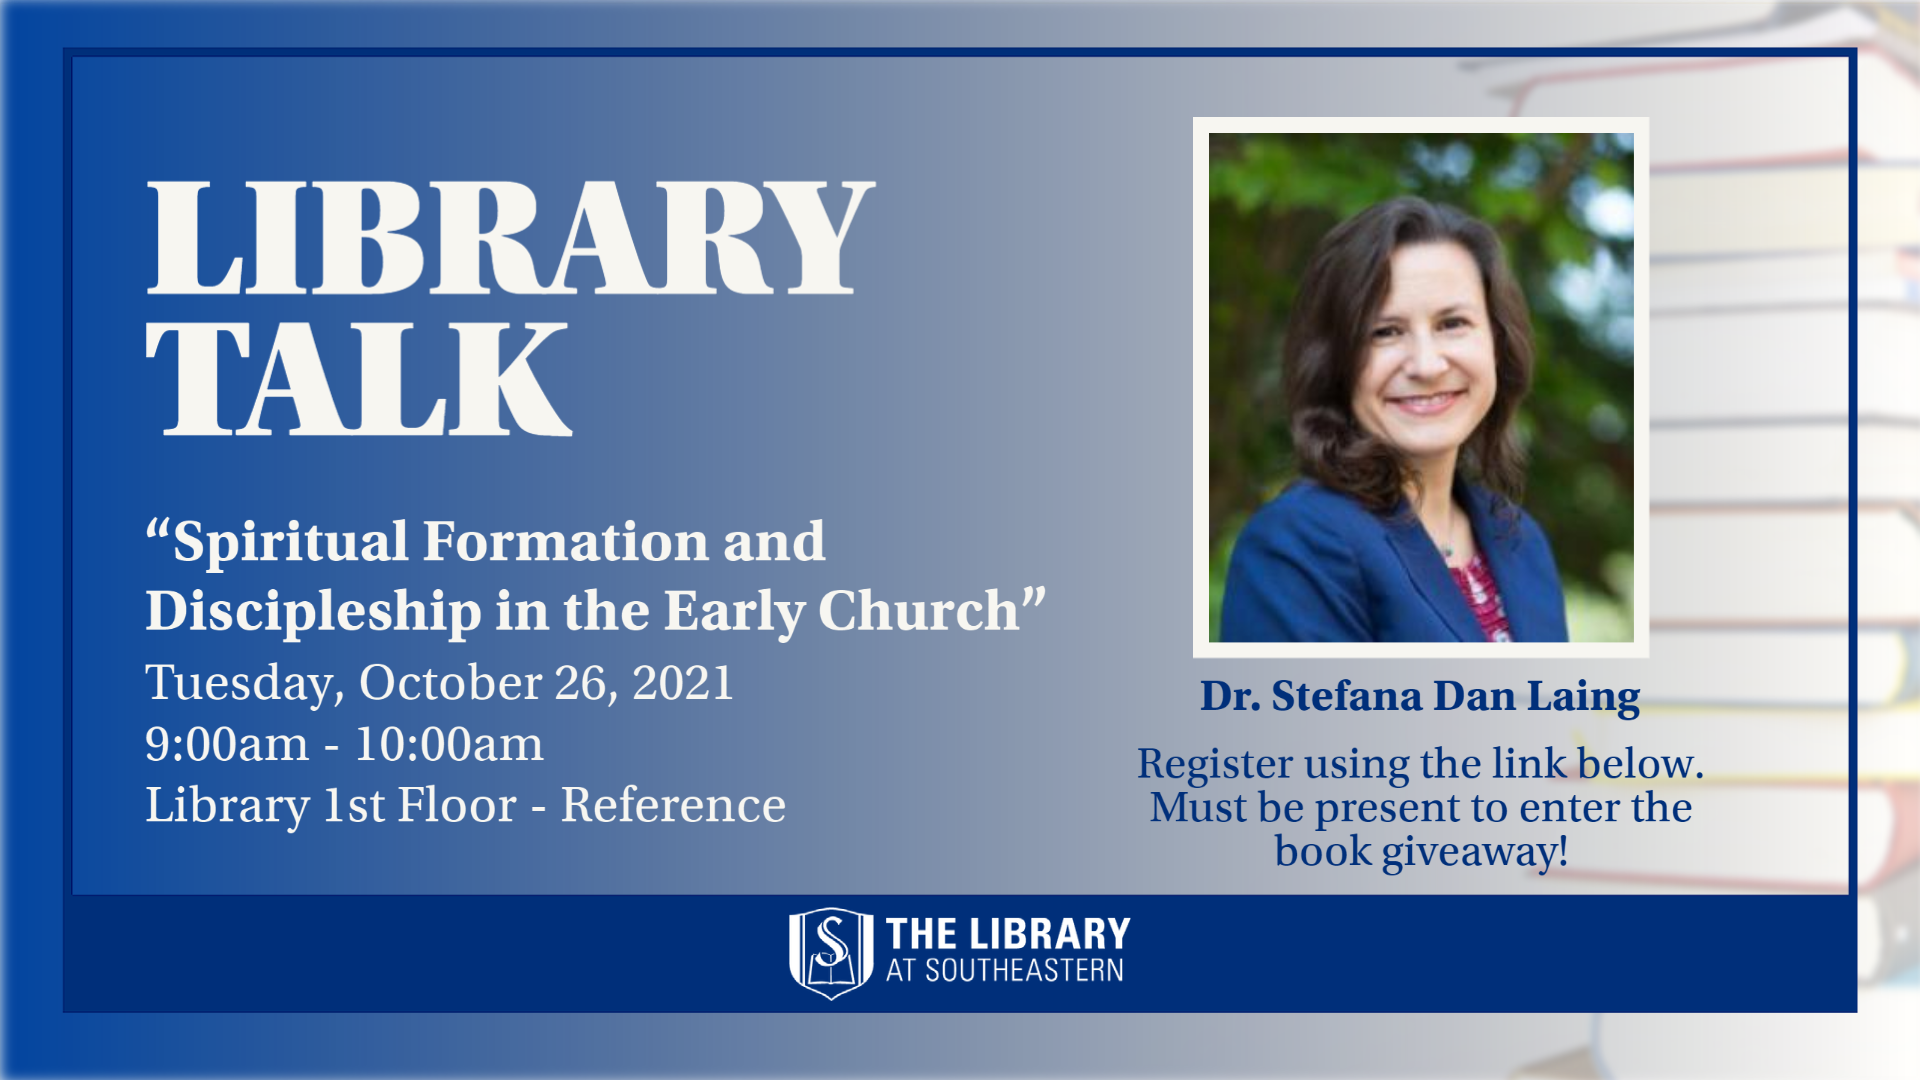 Library Talk: Spiritual Formation and Discipleship in the Early Church